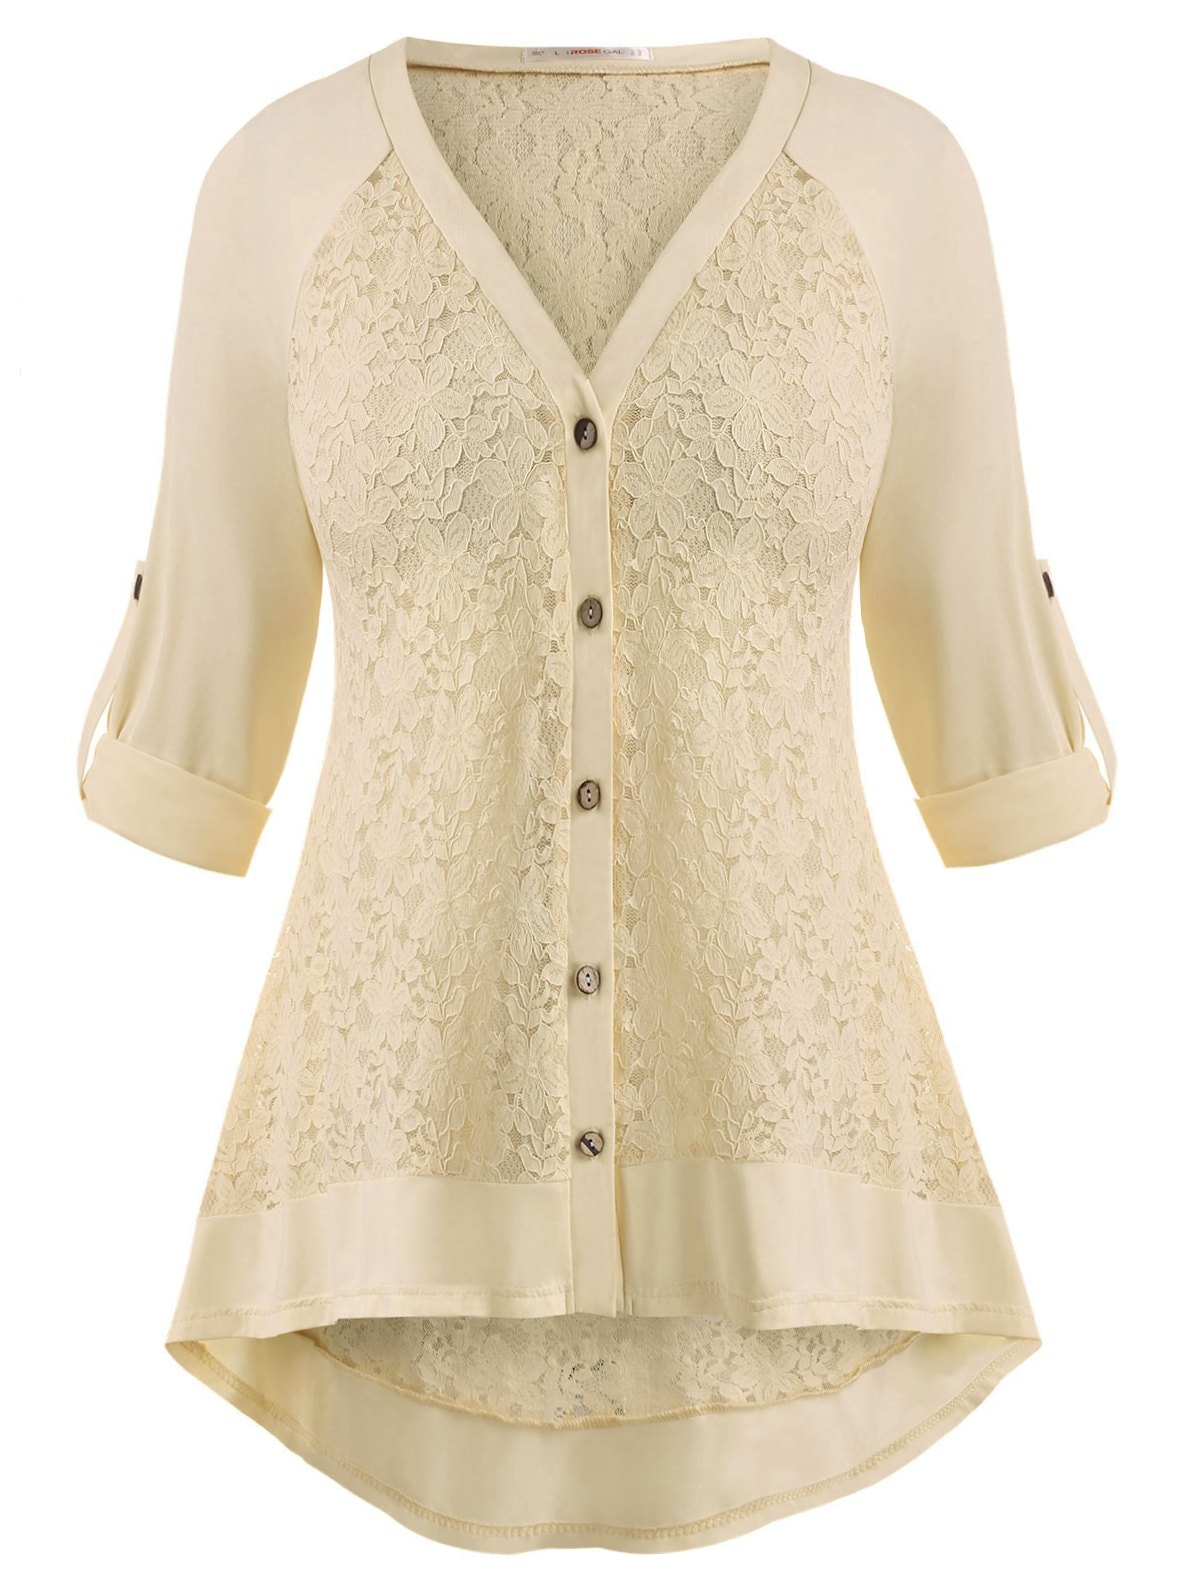 Raglan Sleeve Lace Panel Button Up Plus Size Top